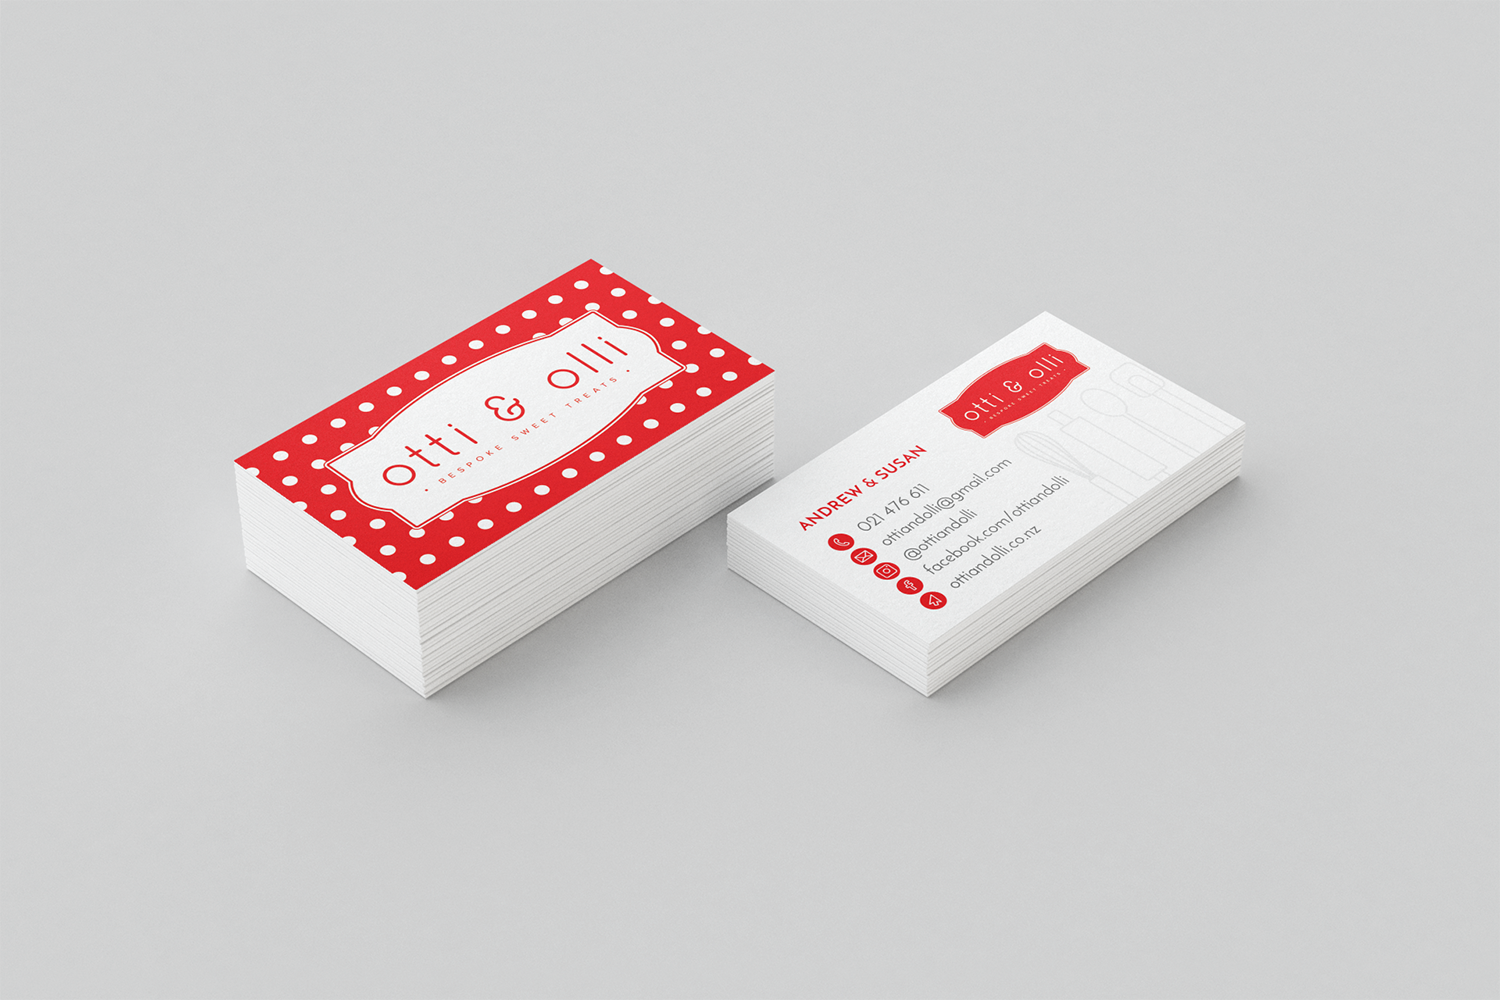 Red and White Polka-Dot Business Cards for Otti and Olli